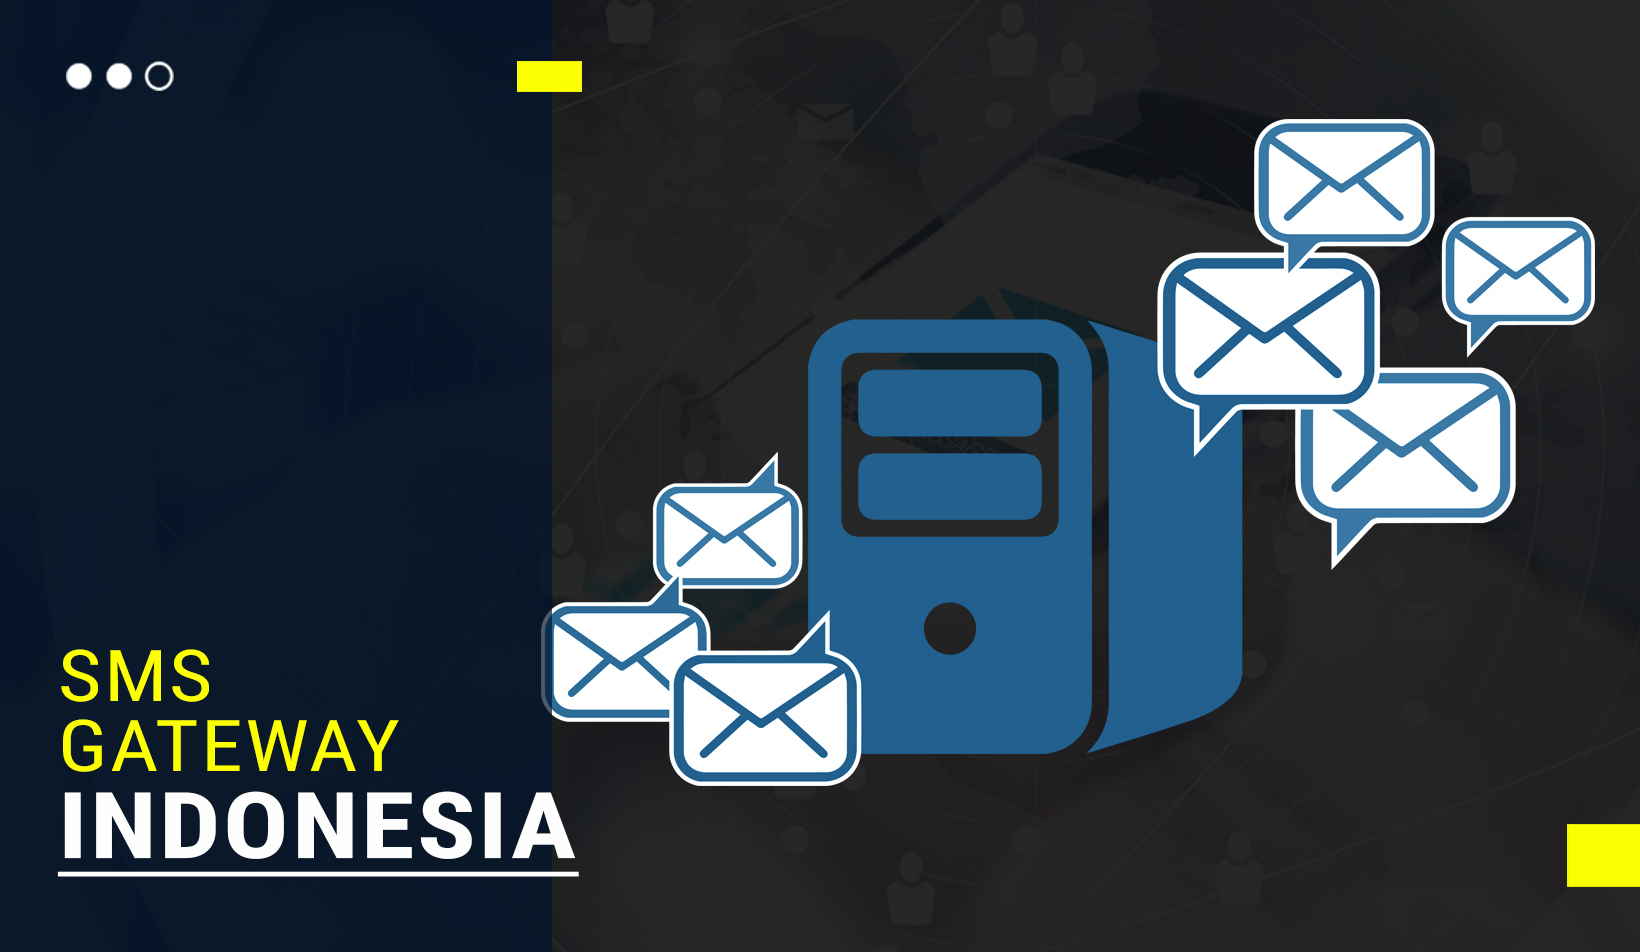 Benefits of SMS Gateway for Indonesian Companies